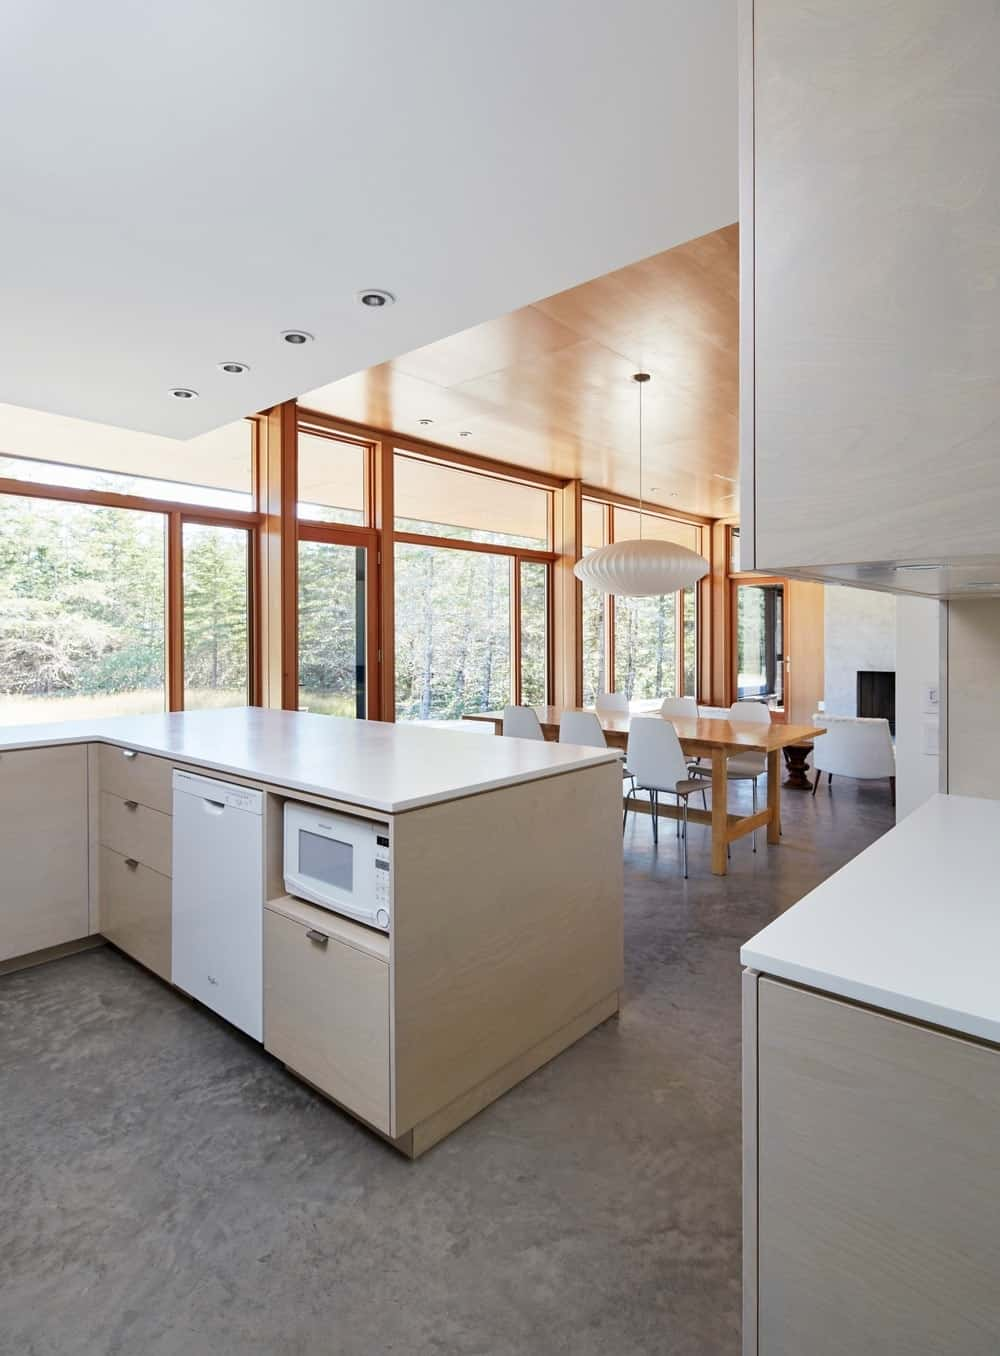 G-shape kitchen with white walls and counters lighted by recessed ceiling lights. Photo credit: Janet Kimber